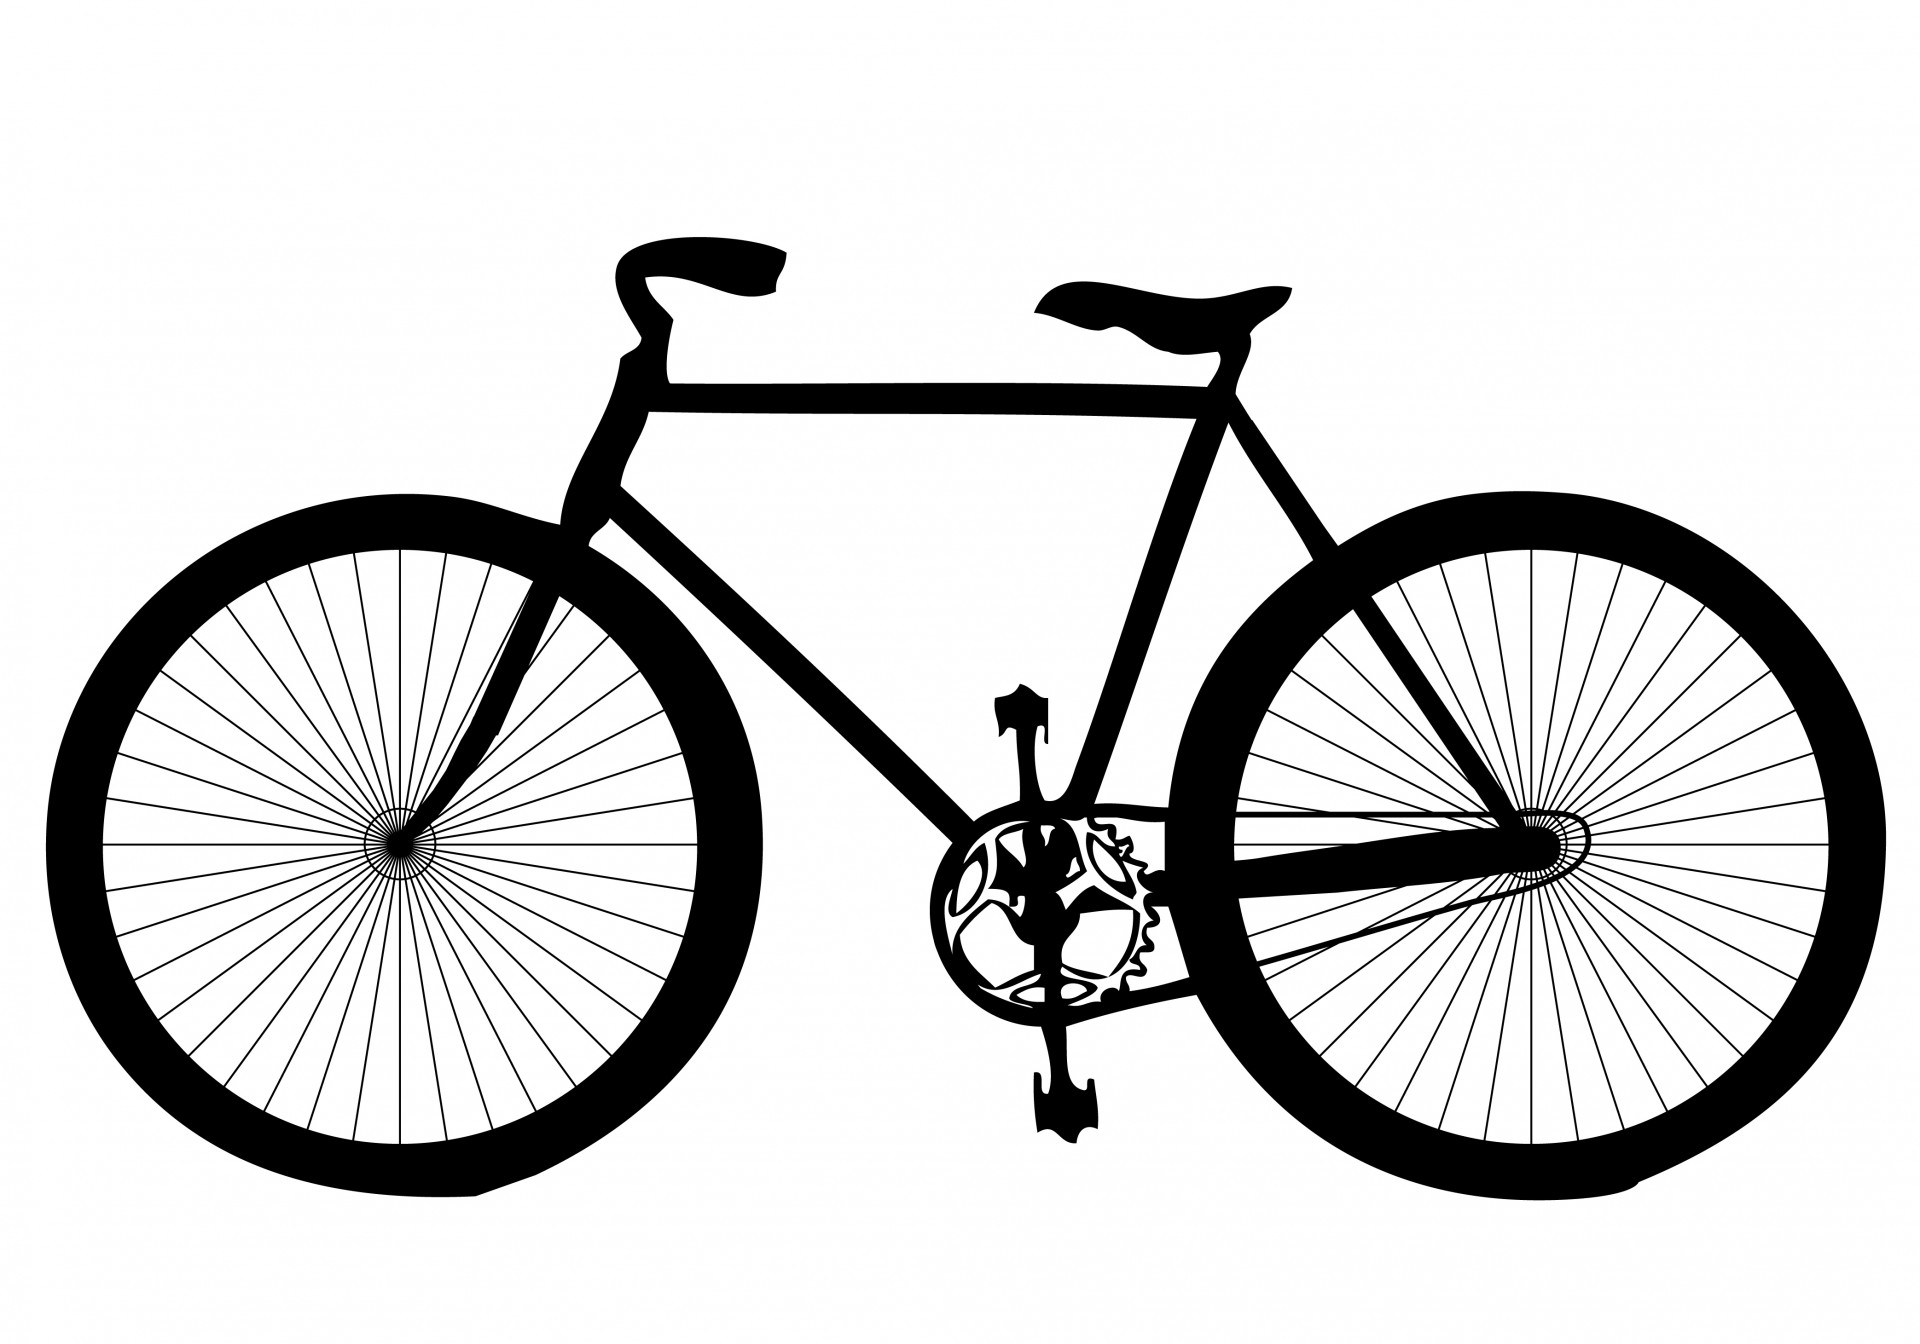 1920x1344 Free Bicycle S Animated Bicycle Clipart 2